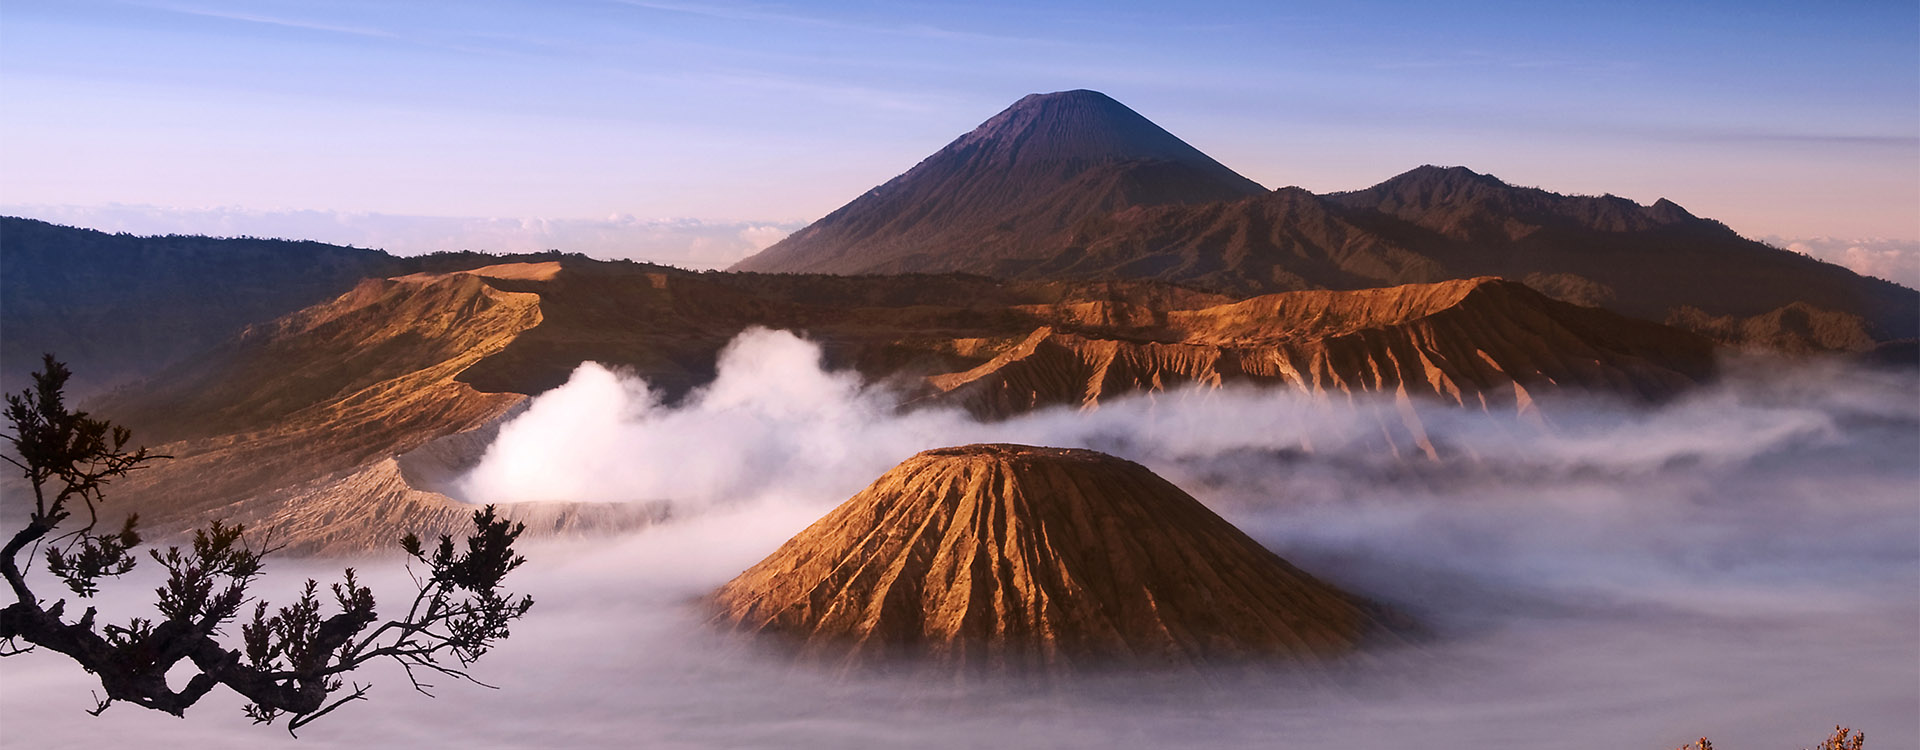 Mount Bromo volcanoes taken in Tengger Caldera, East Java, Indonesia